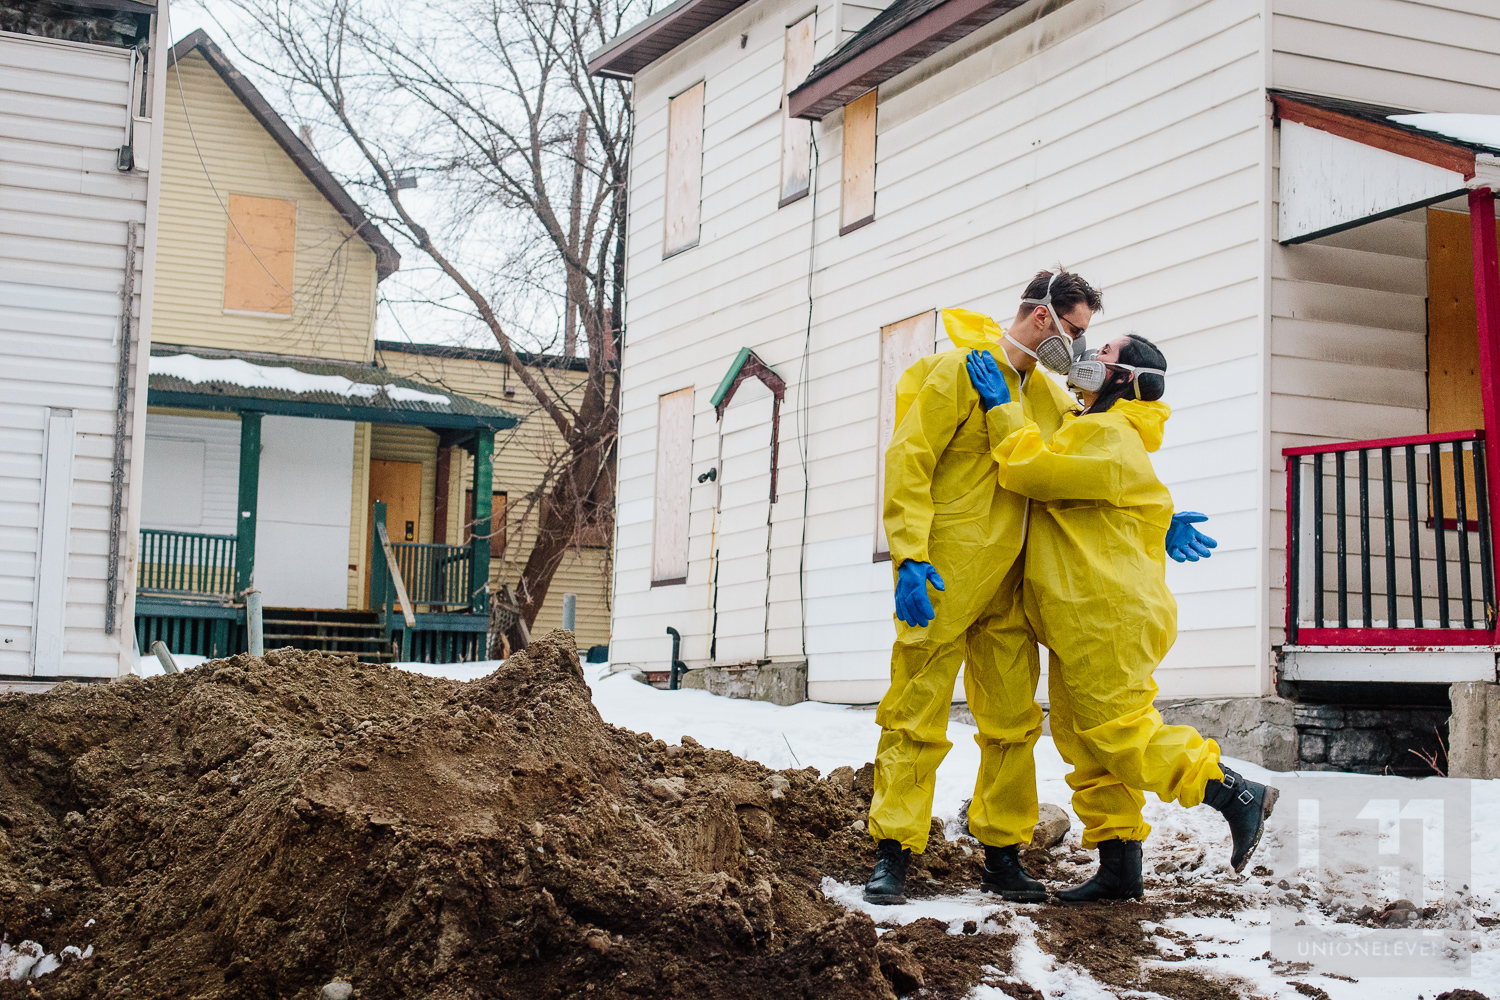 Engagement shoot with the couple hugging in their hazmat suits